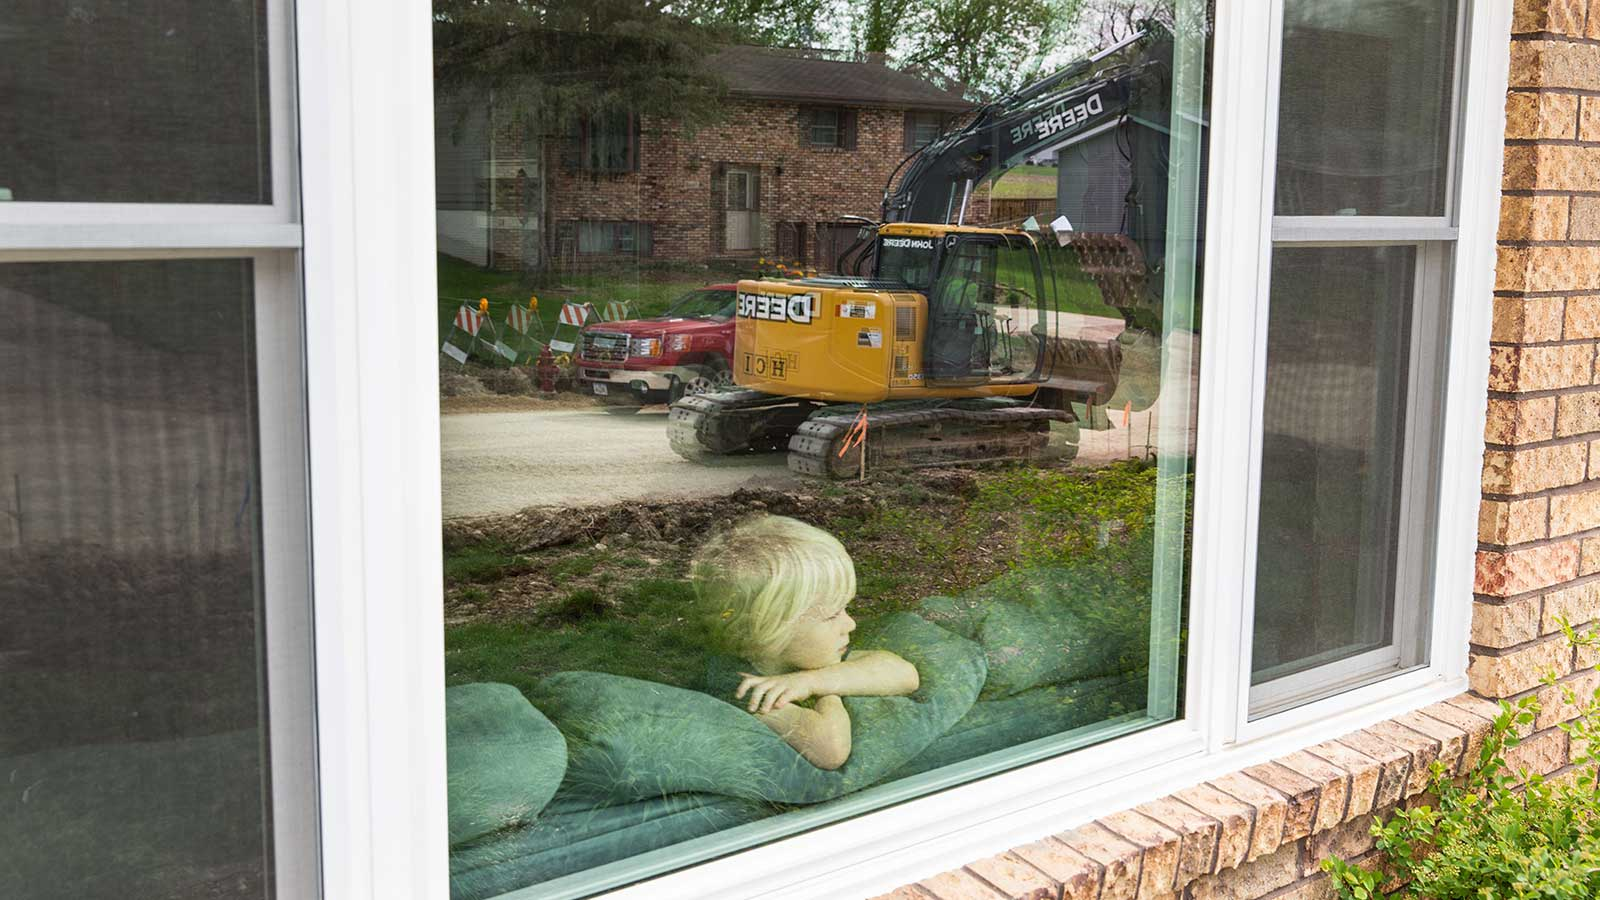 Charlie Koelker watches the work from the window inside his home.